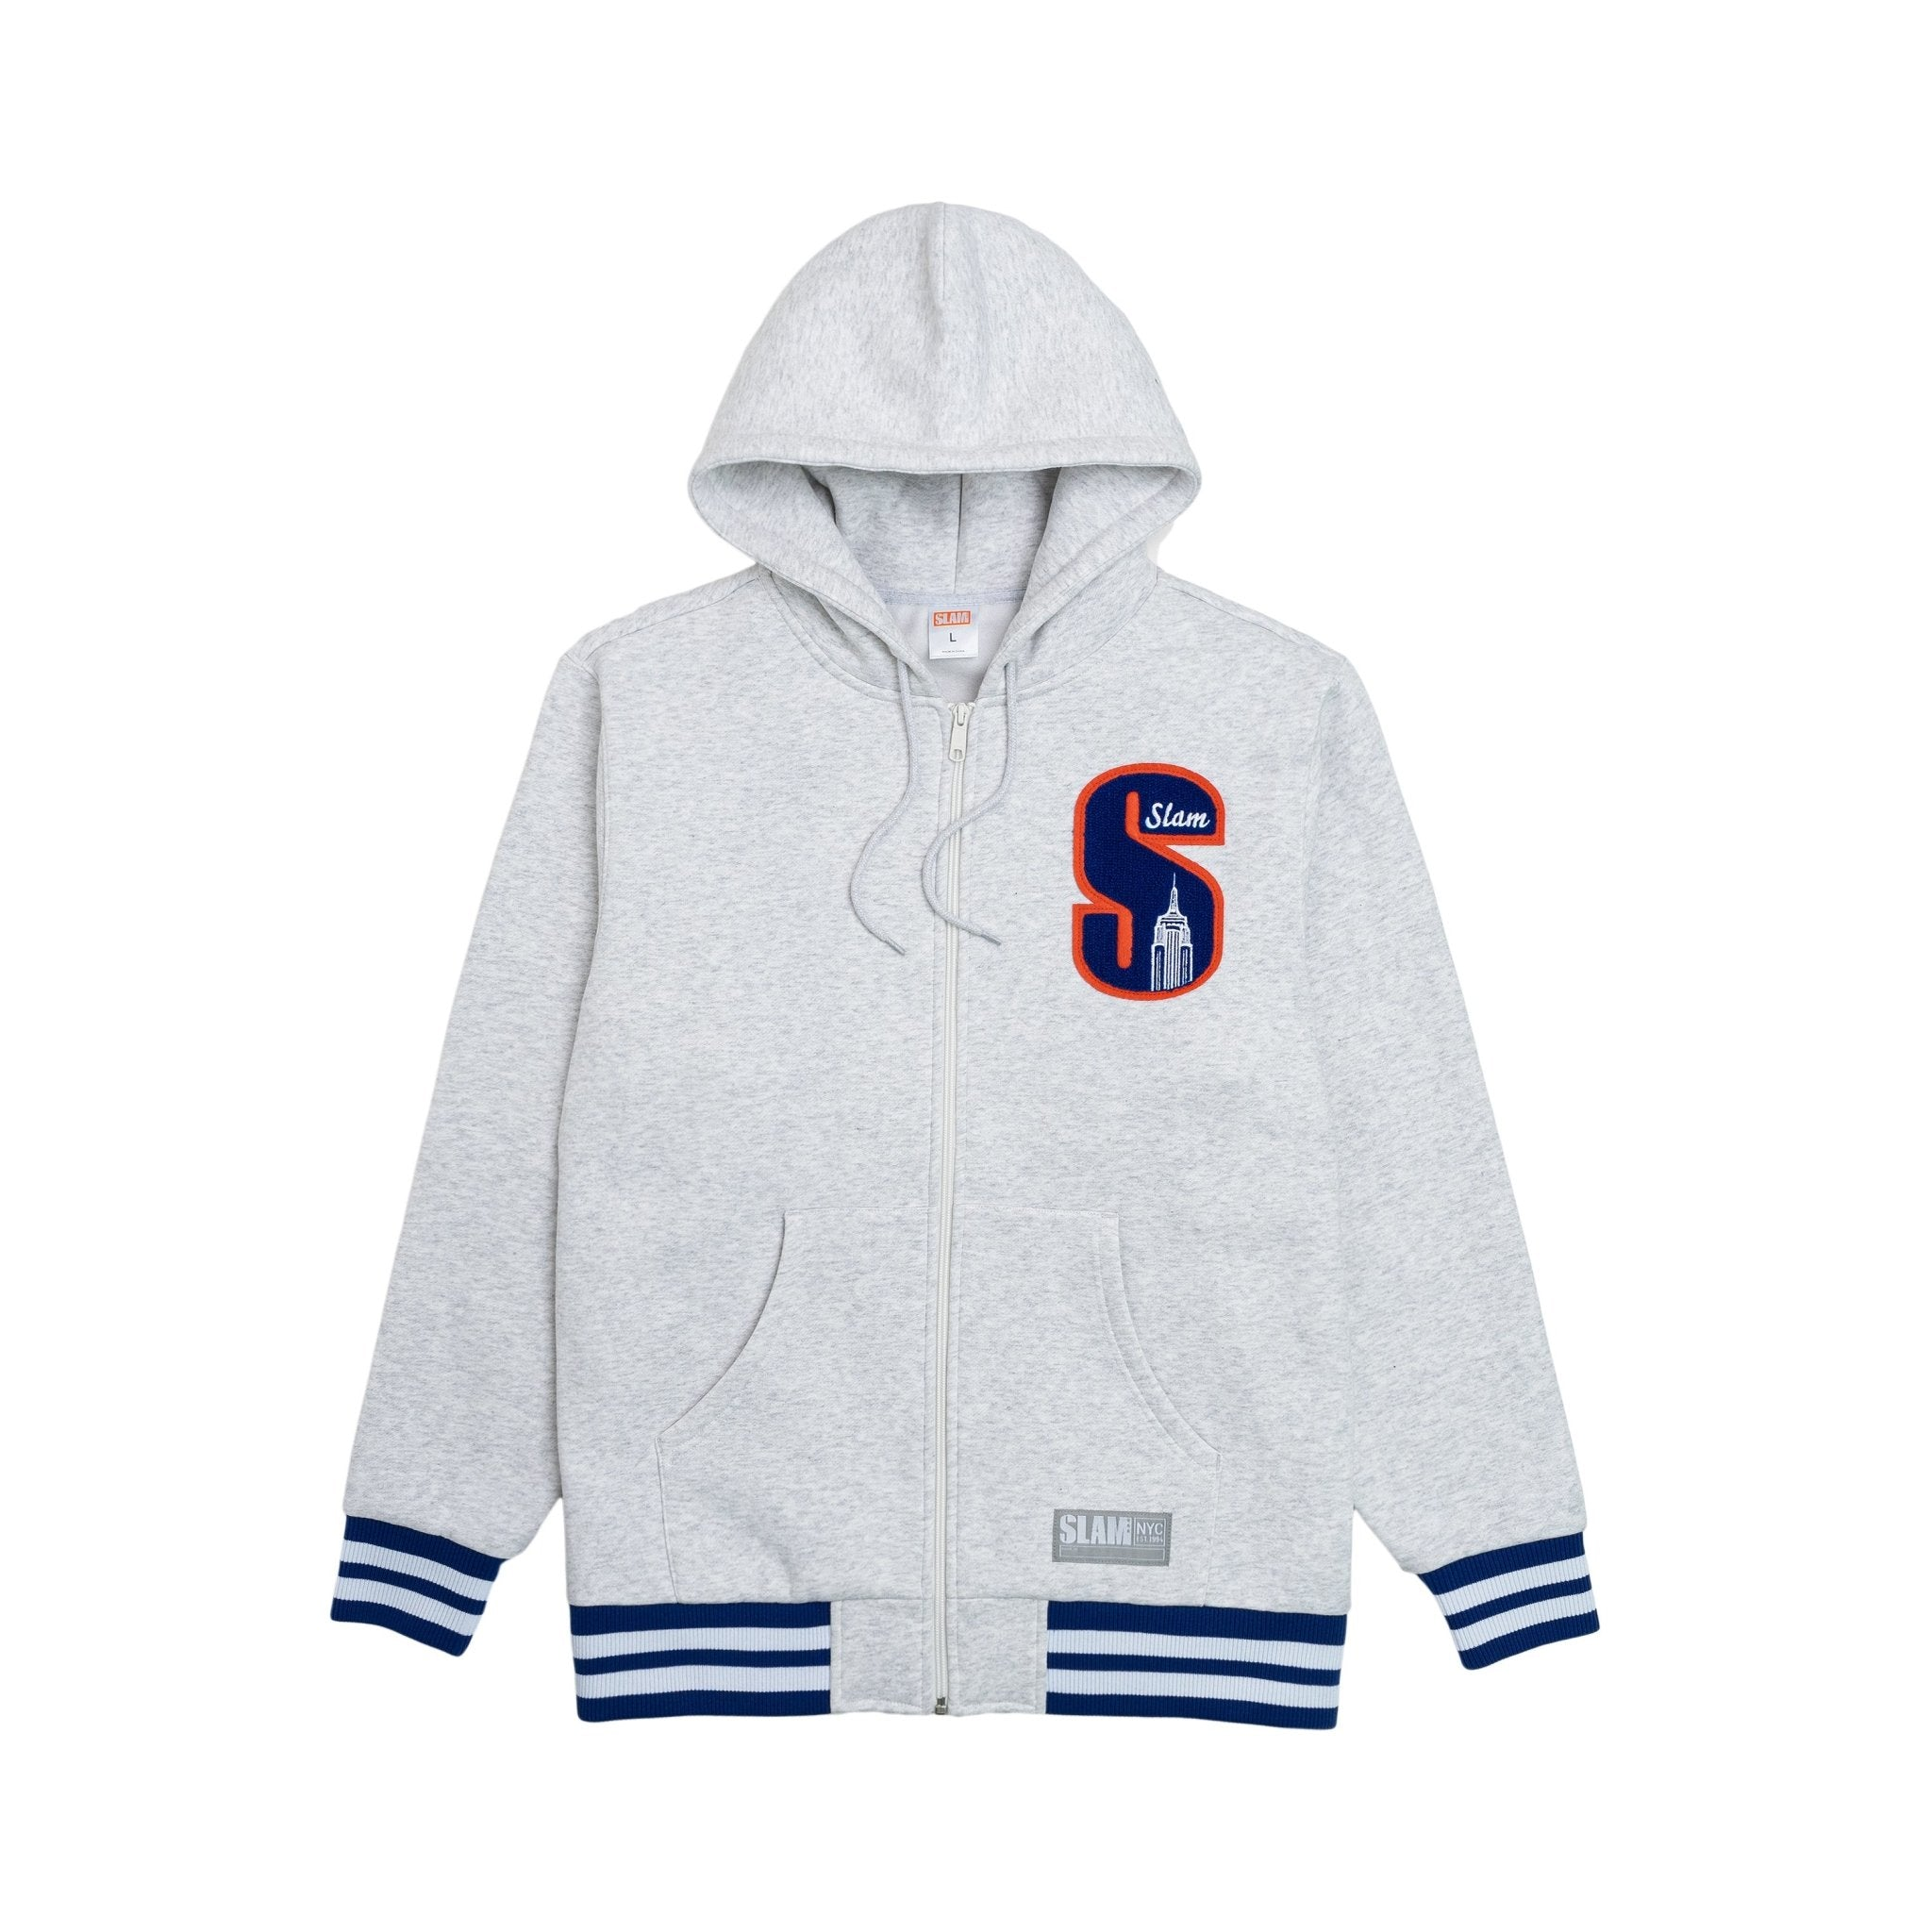 SLAM Empire Zip Up Hoodie - SLAM